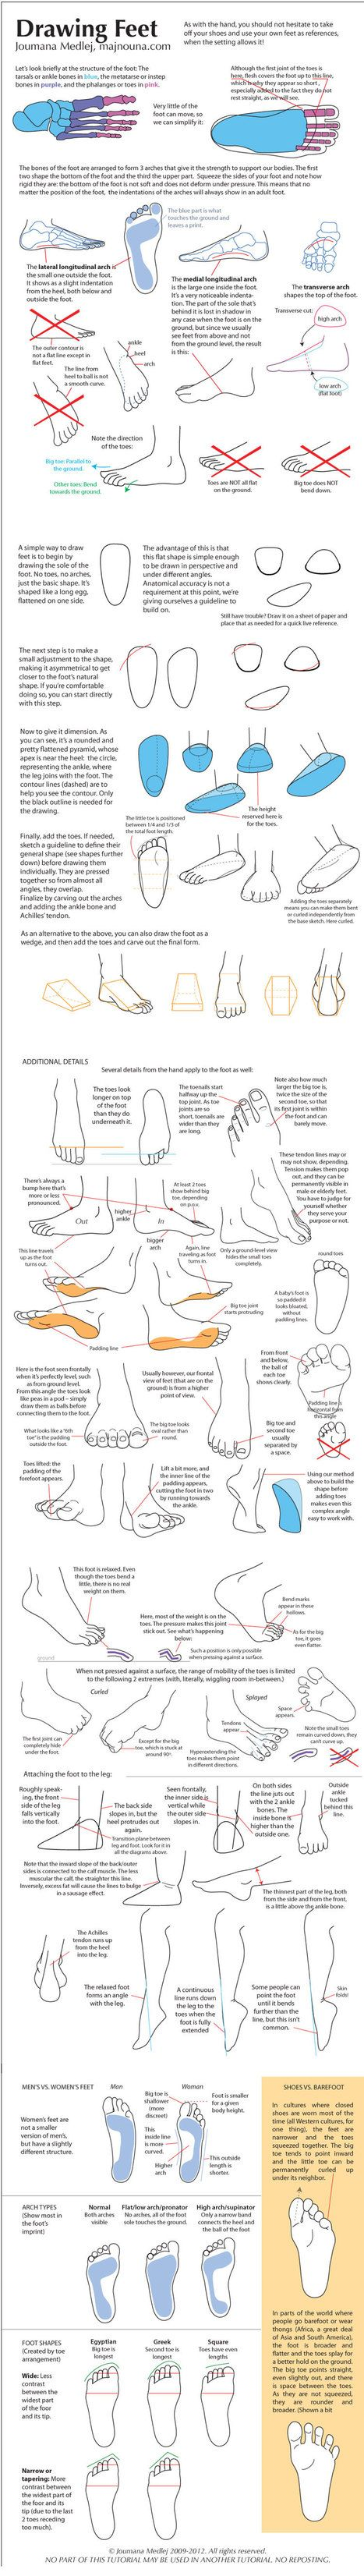 Drawing Feet: One Step at a Time | Drawing References and Resources | Scoop.it: